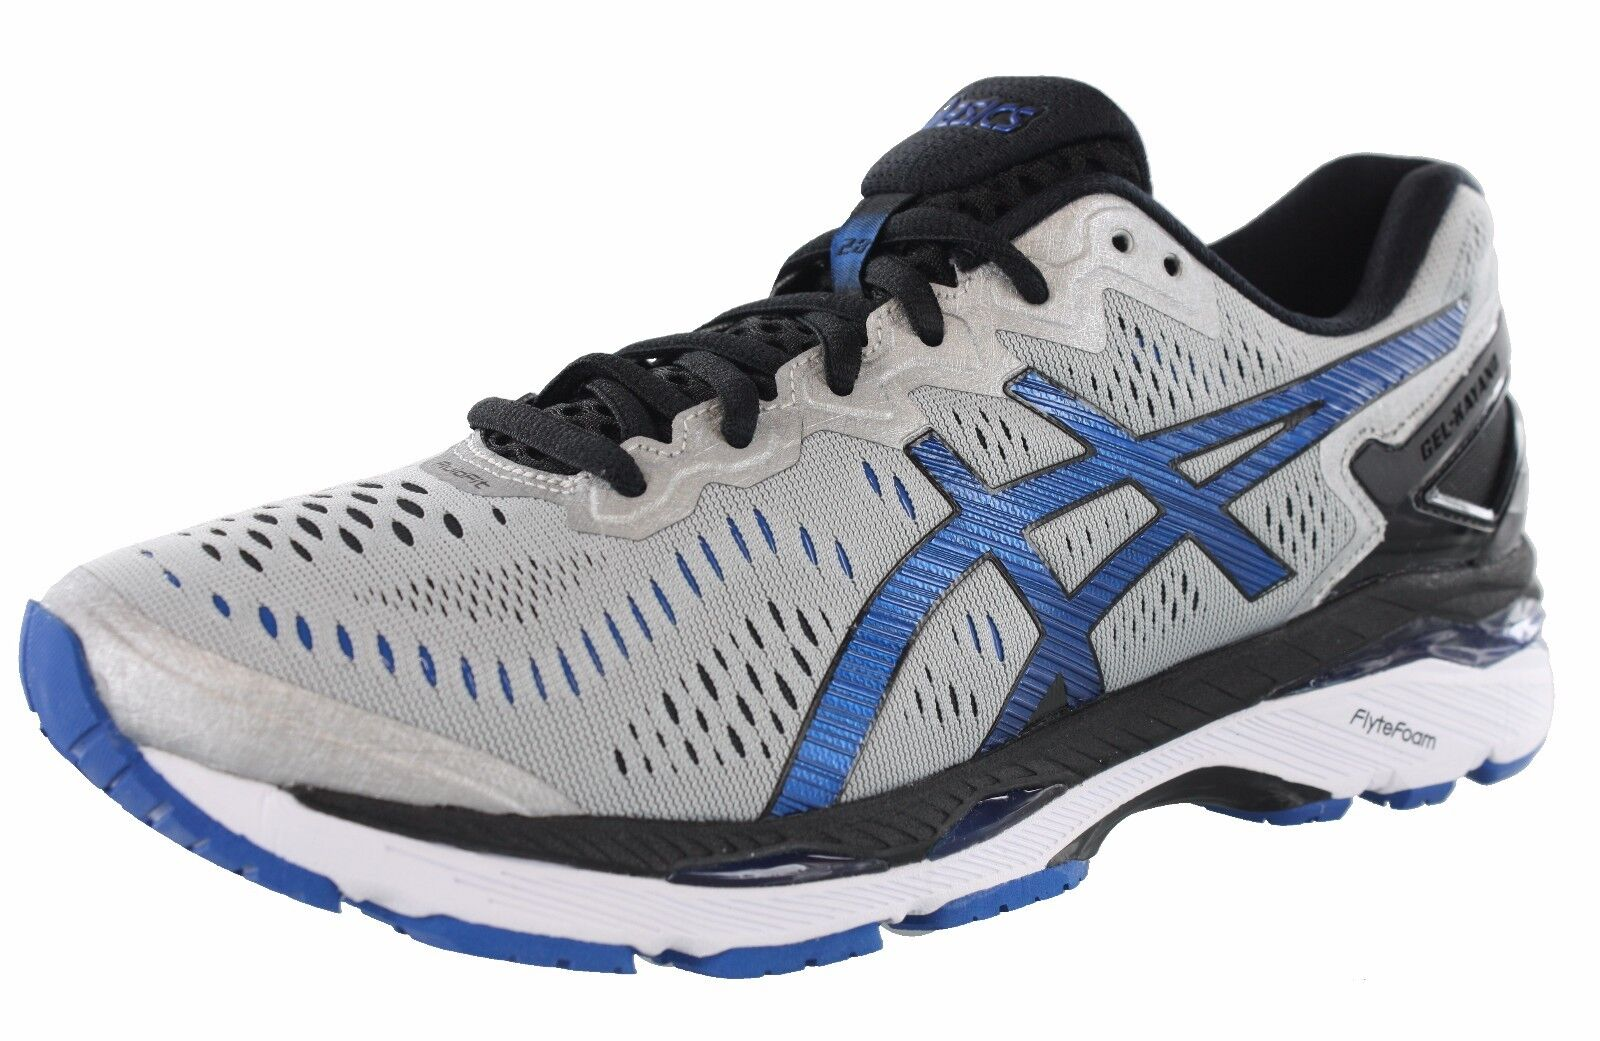 0299f5024070 Men s ASICS GEL Kayano 23 2e Wide Width T647n Running Shoes Sz 8 for ...